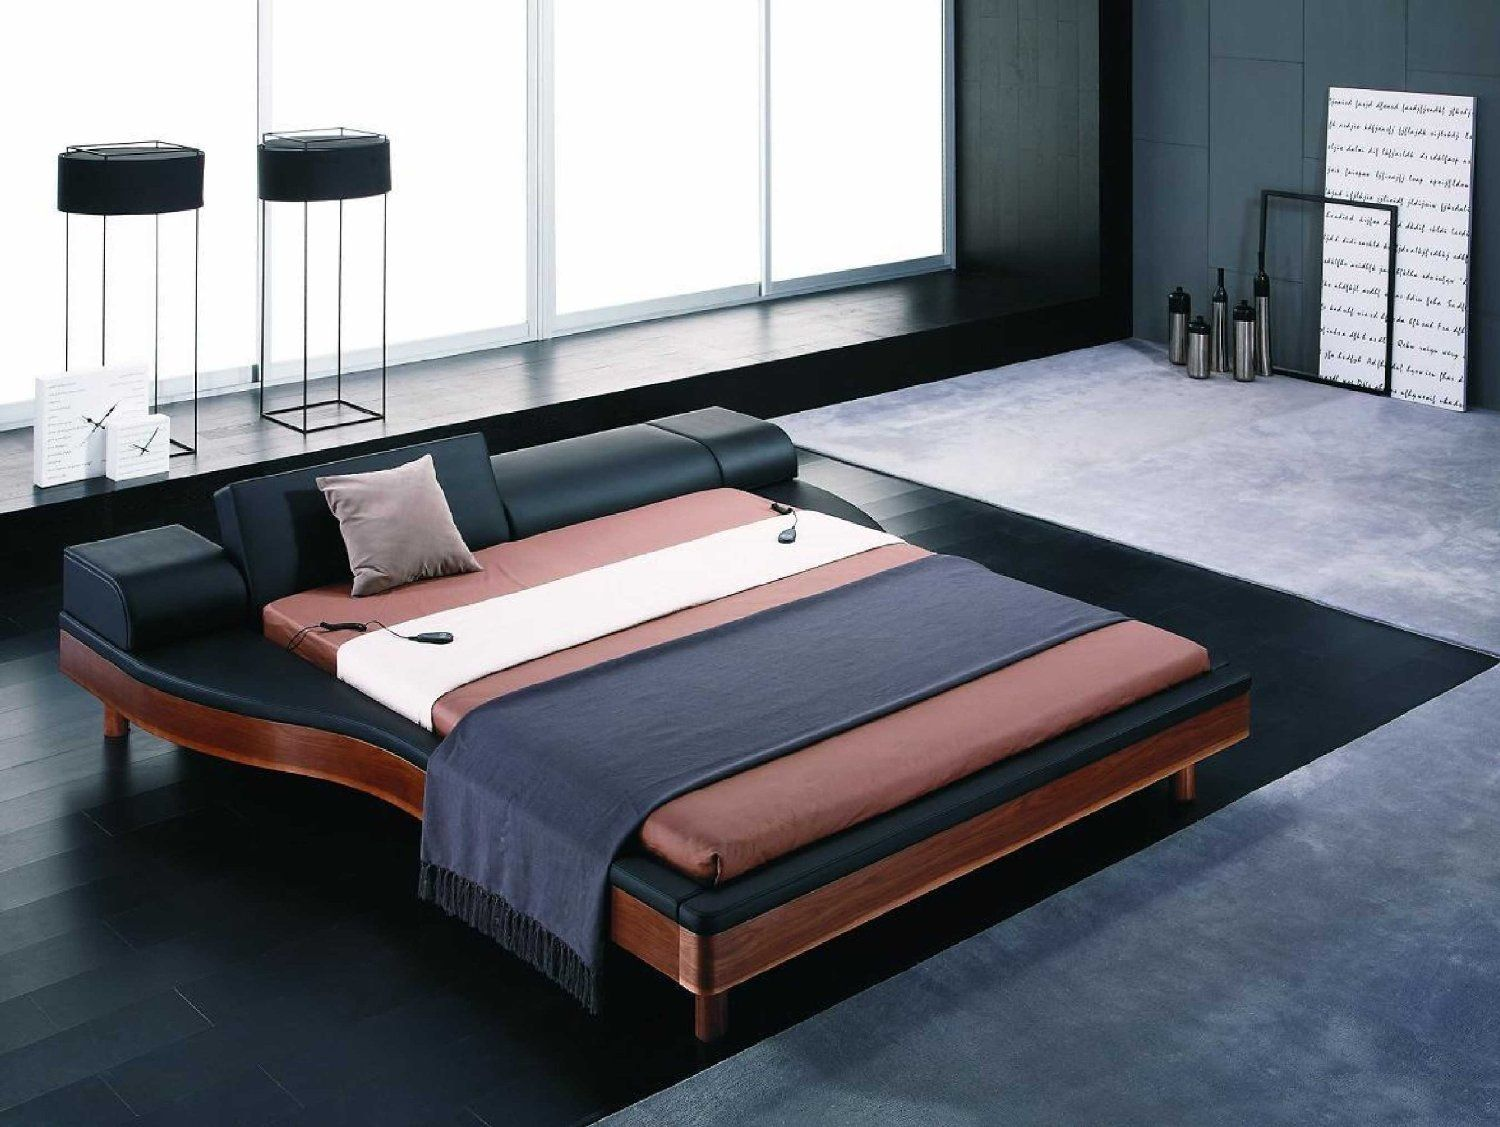 Modern platform bedroom sets - Italian Quality Leather Luxury Platform Bed San Jose California Vporto Prime Classic Design Inc Italian Modern Furniture Luxury Designer Furniture